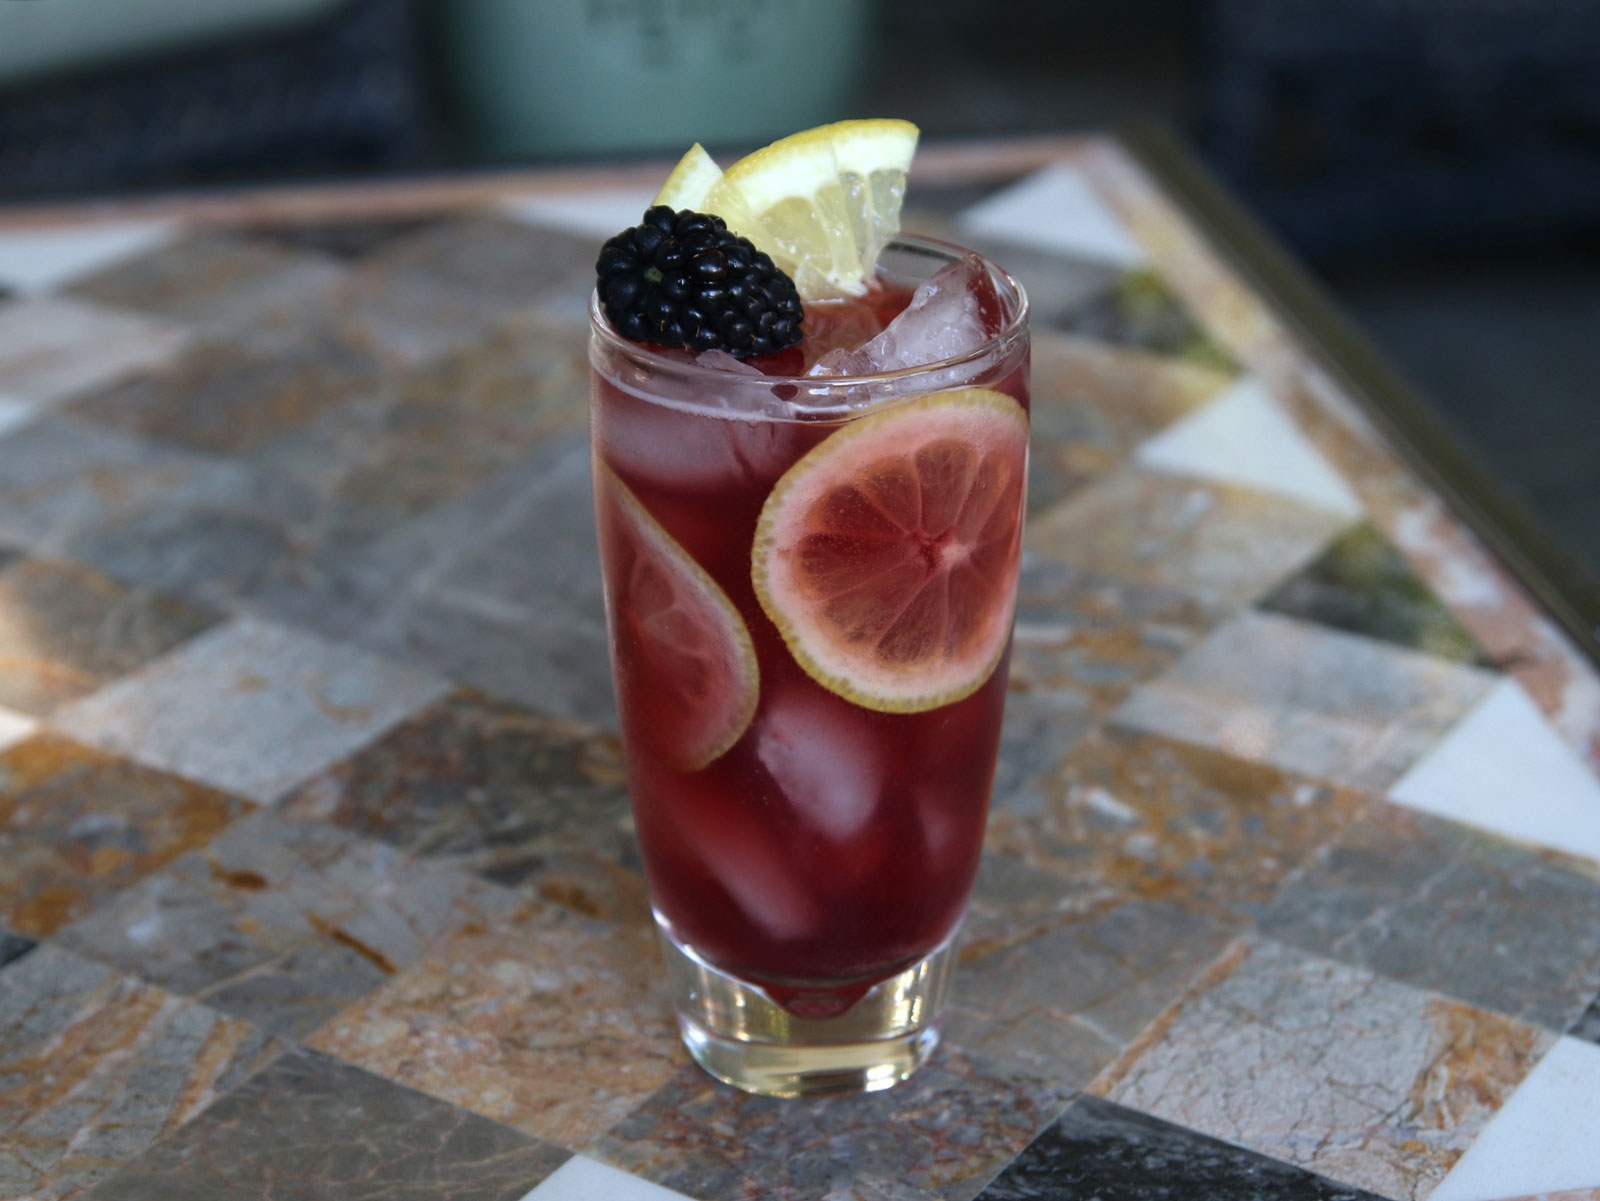 Lemon & Berries Cocktail